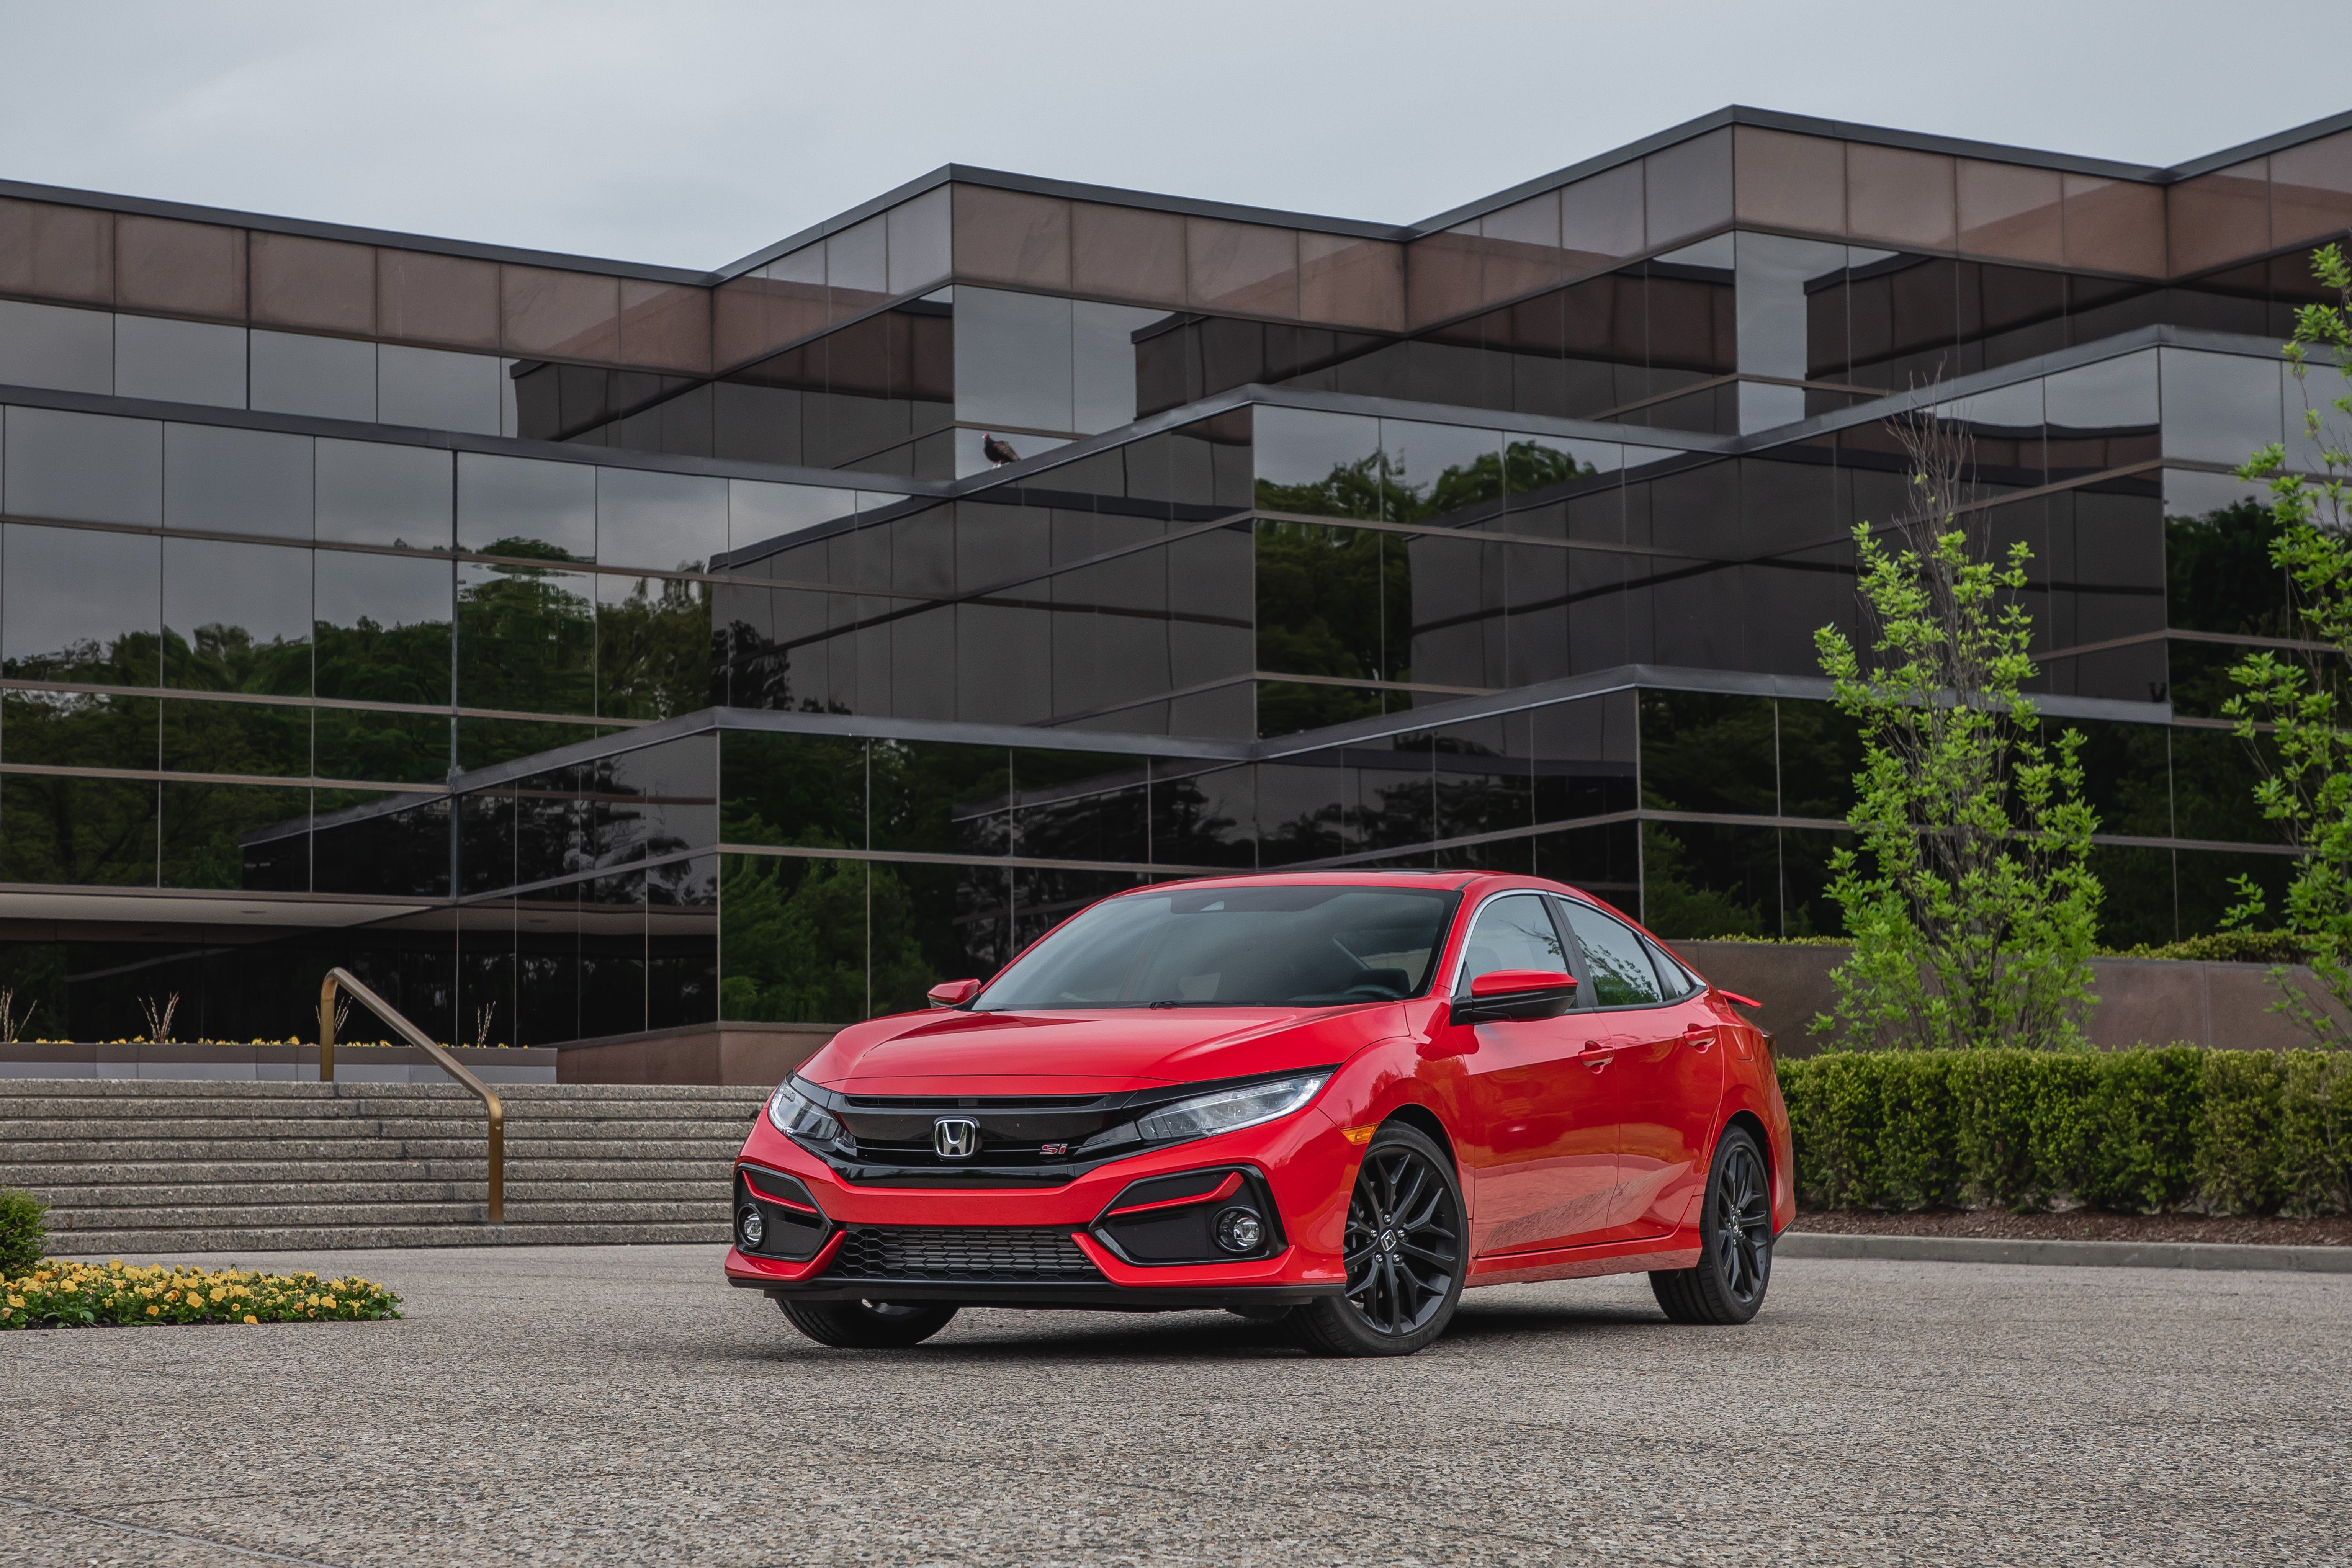 2020 Honda Civic Si Pictures